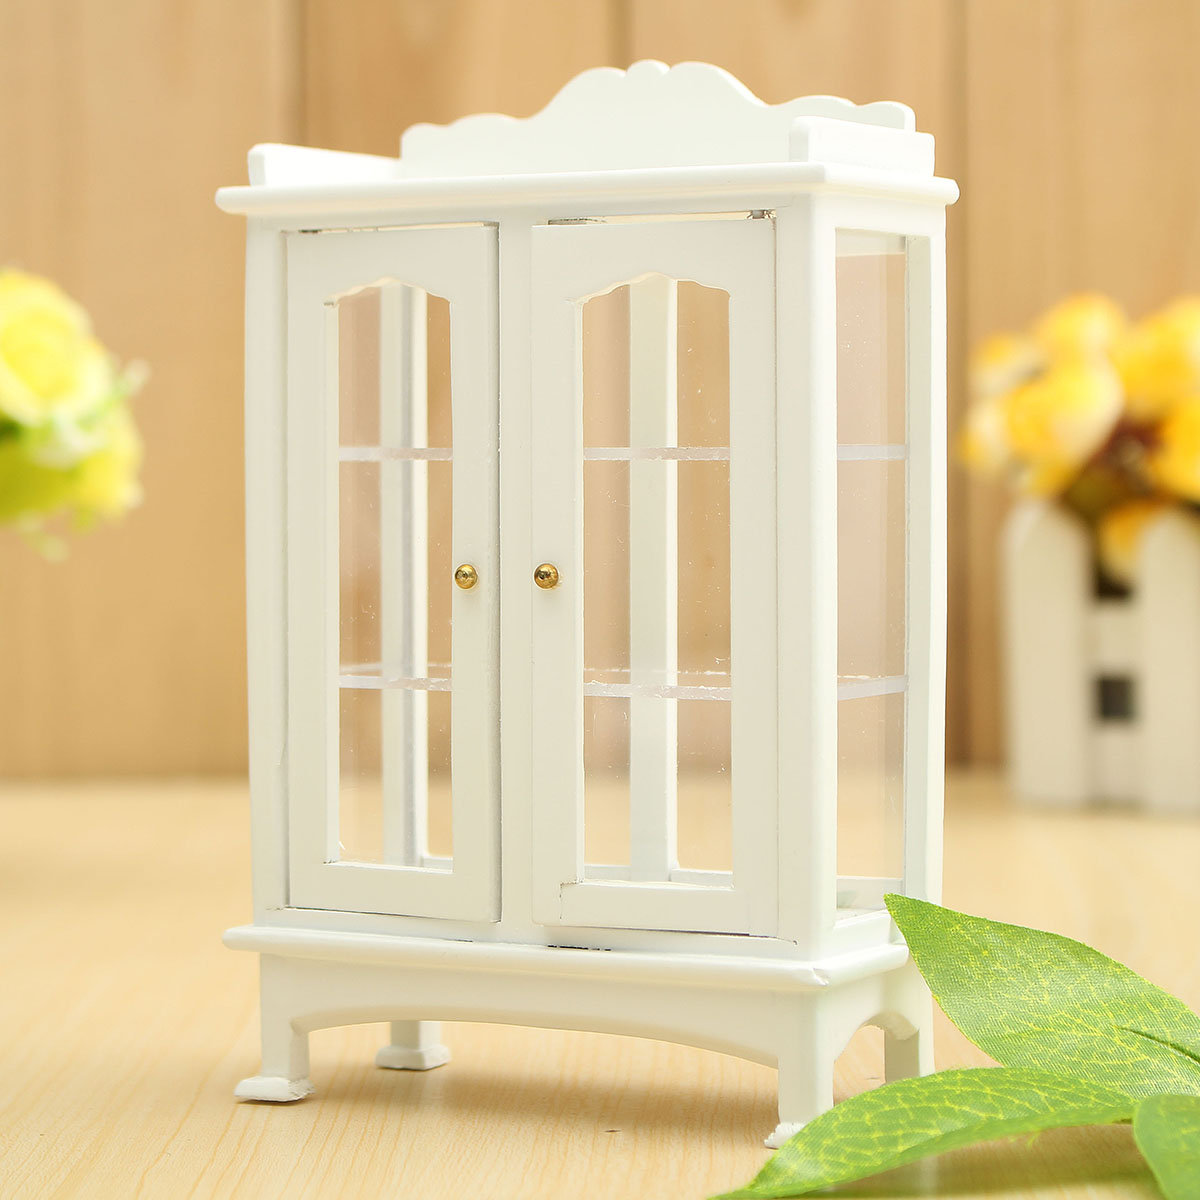 White 1 12 dollhouse miniature furniture wooden display cabinet 14 alex nld Dollhouse wooden furniture